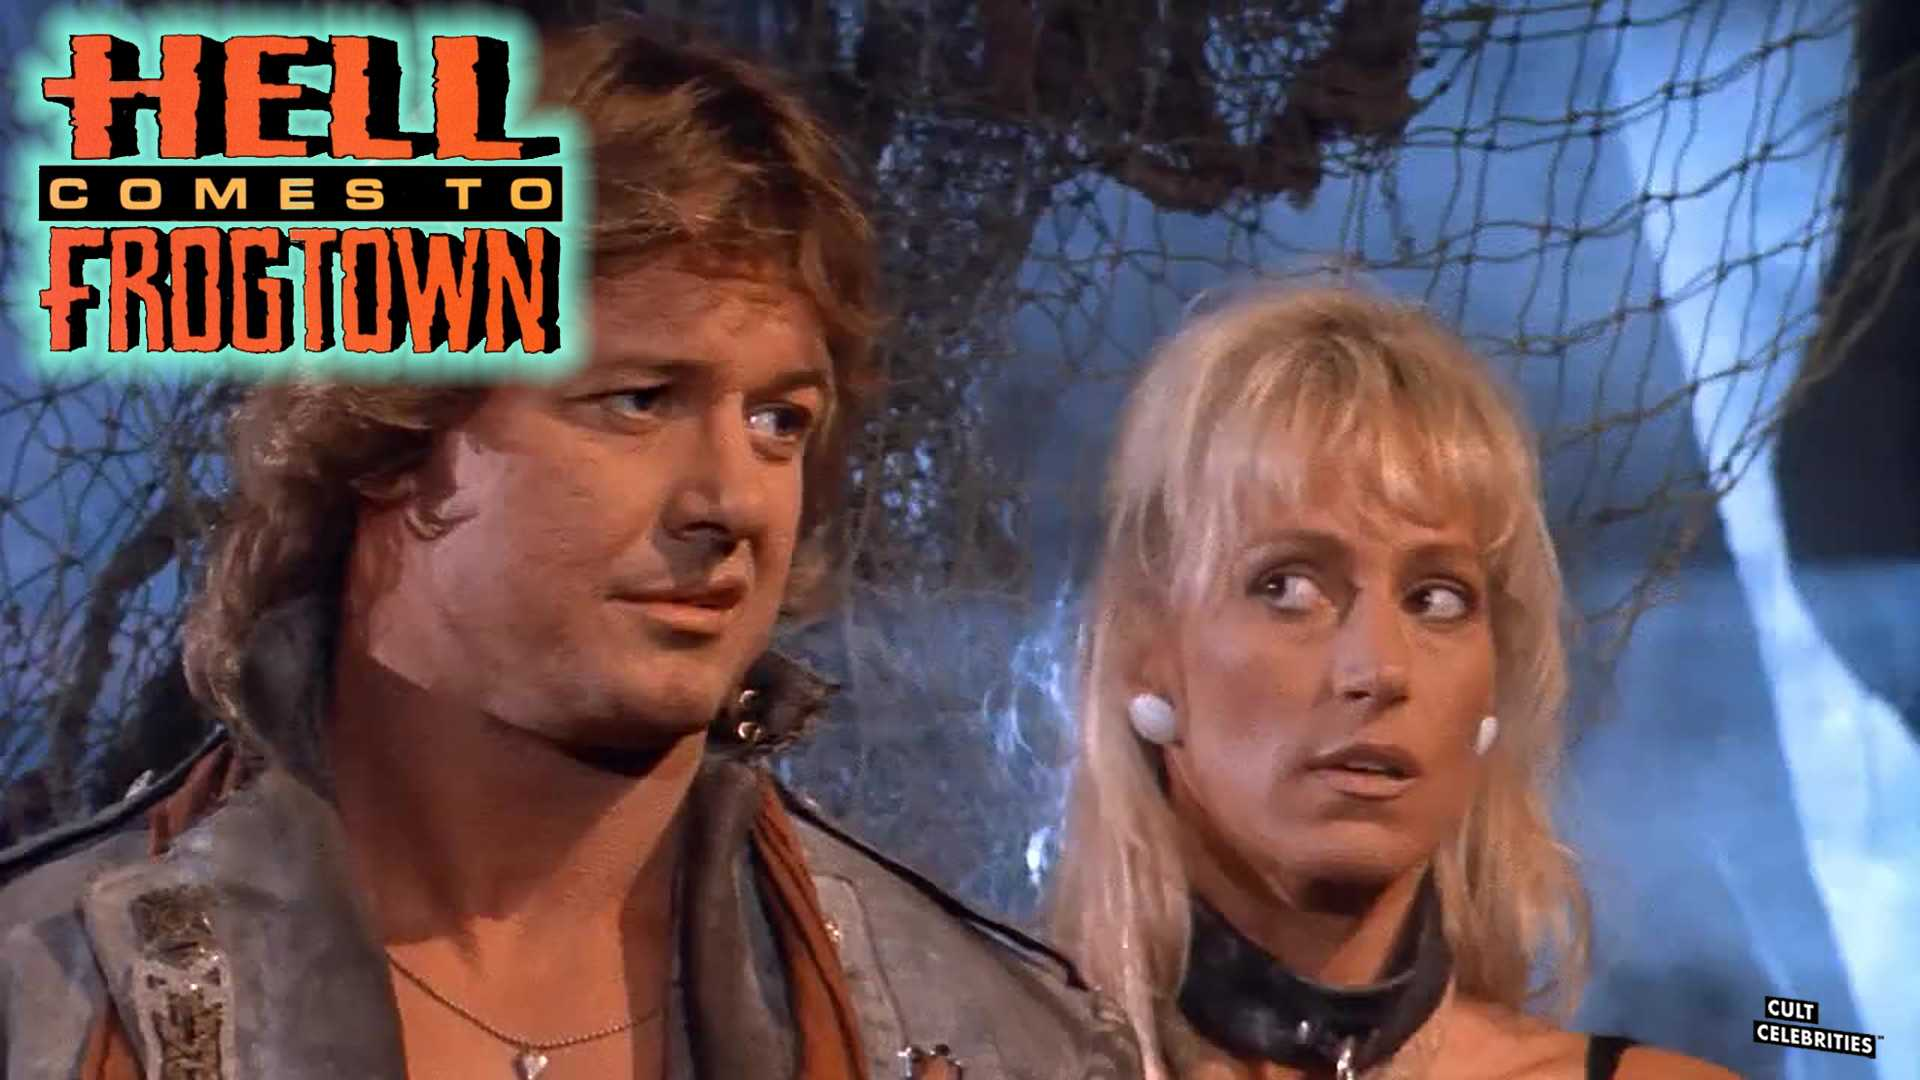 Sandahl Bergman in Hell Comes to Frogtown (1988)